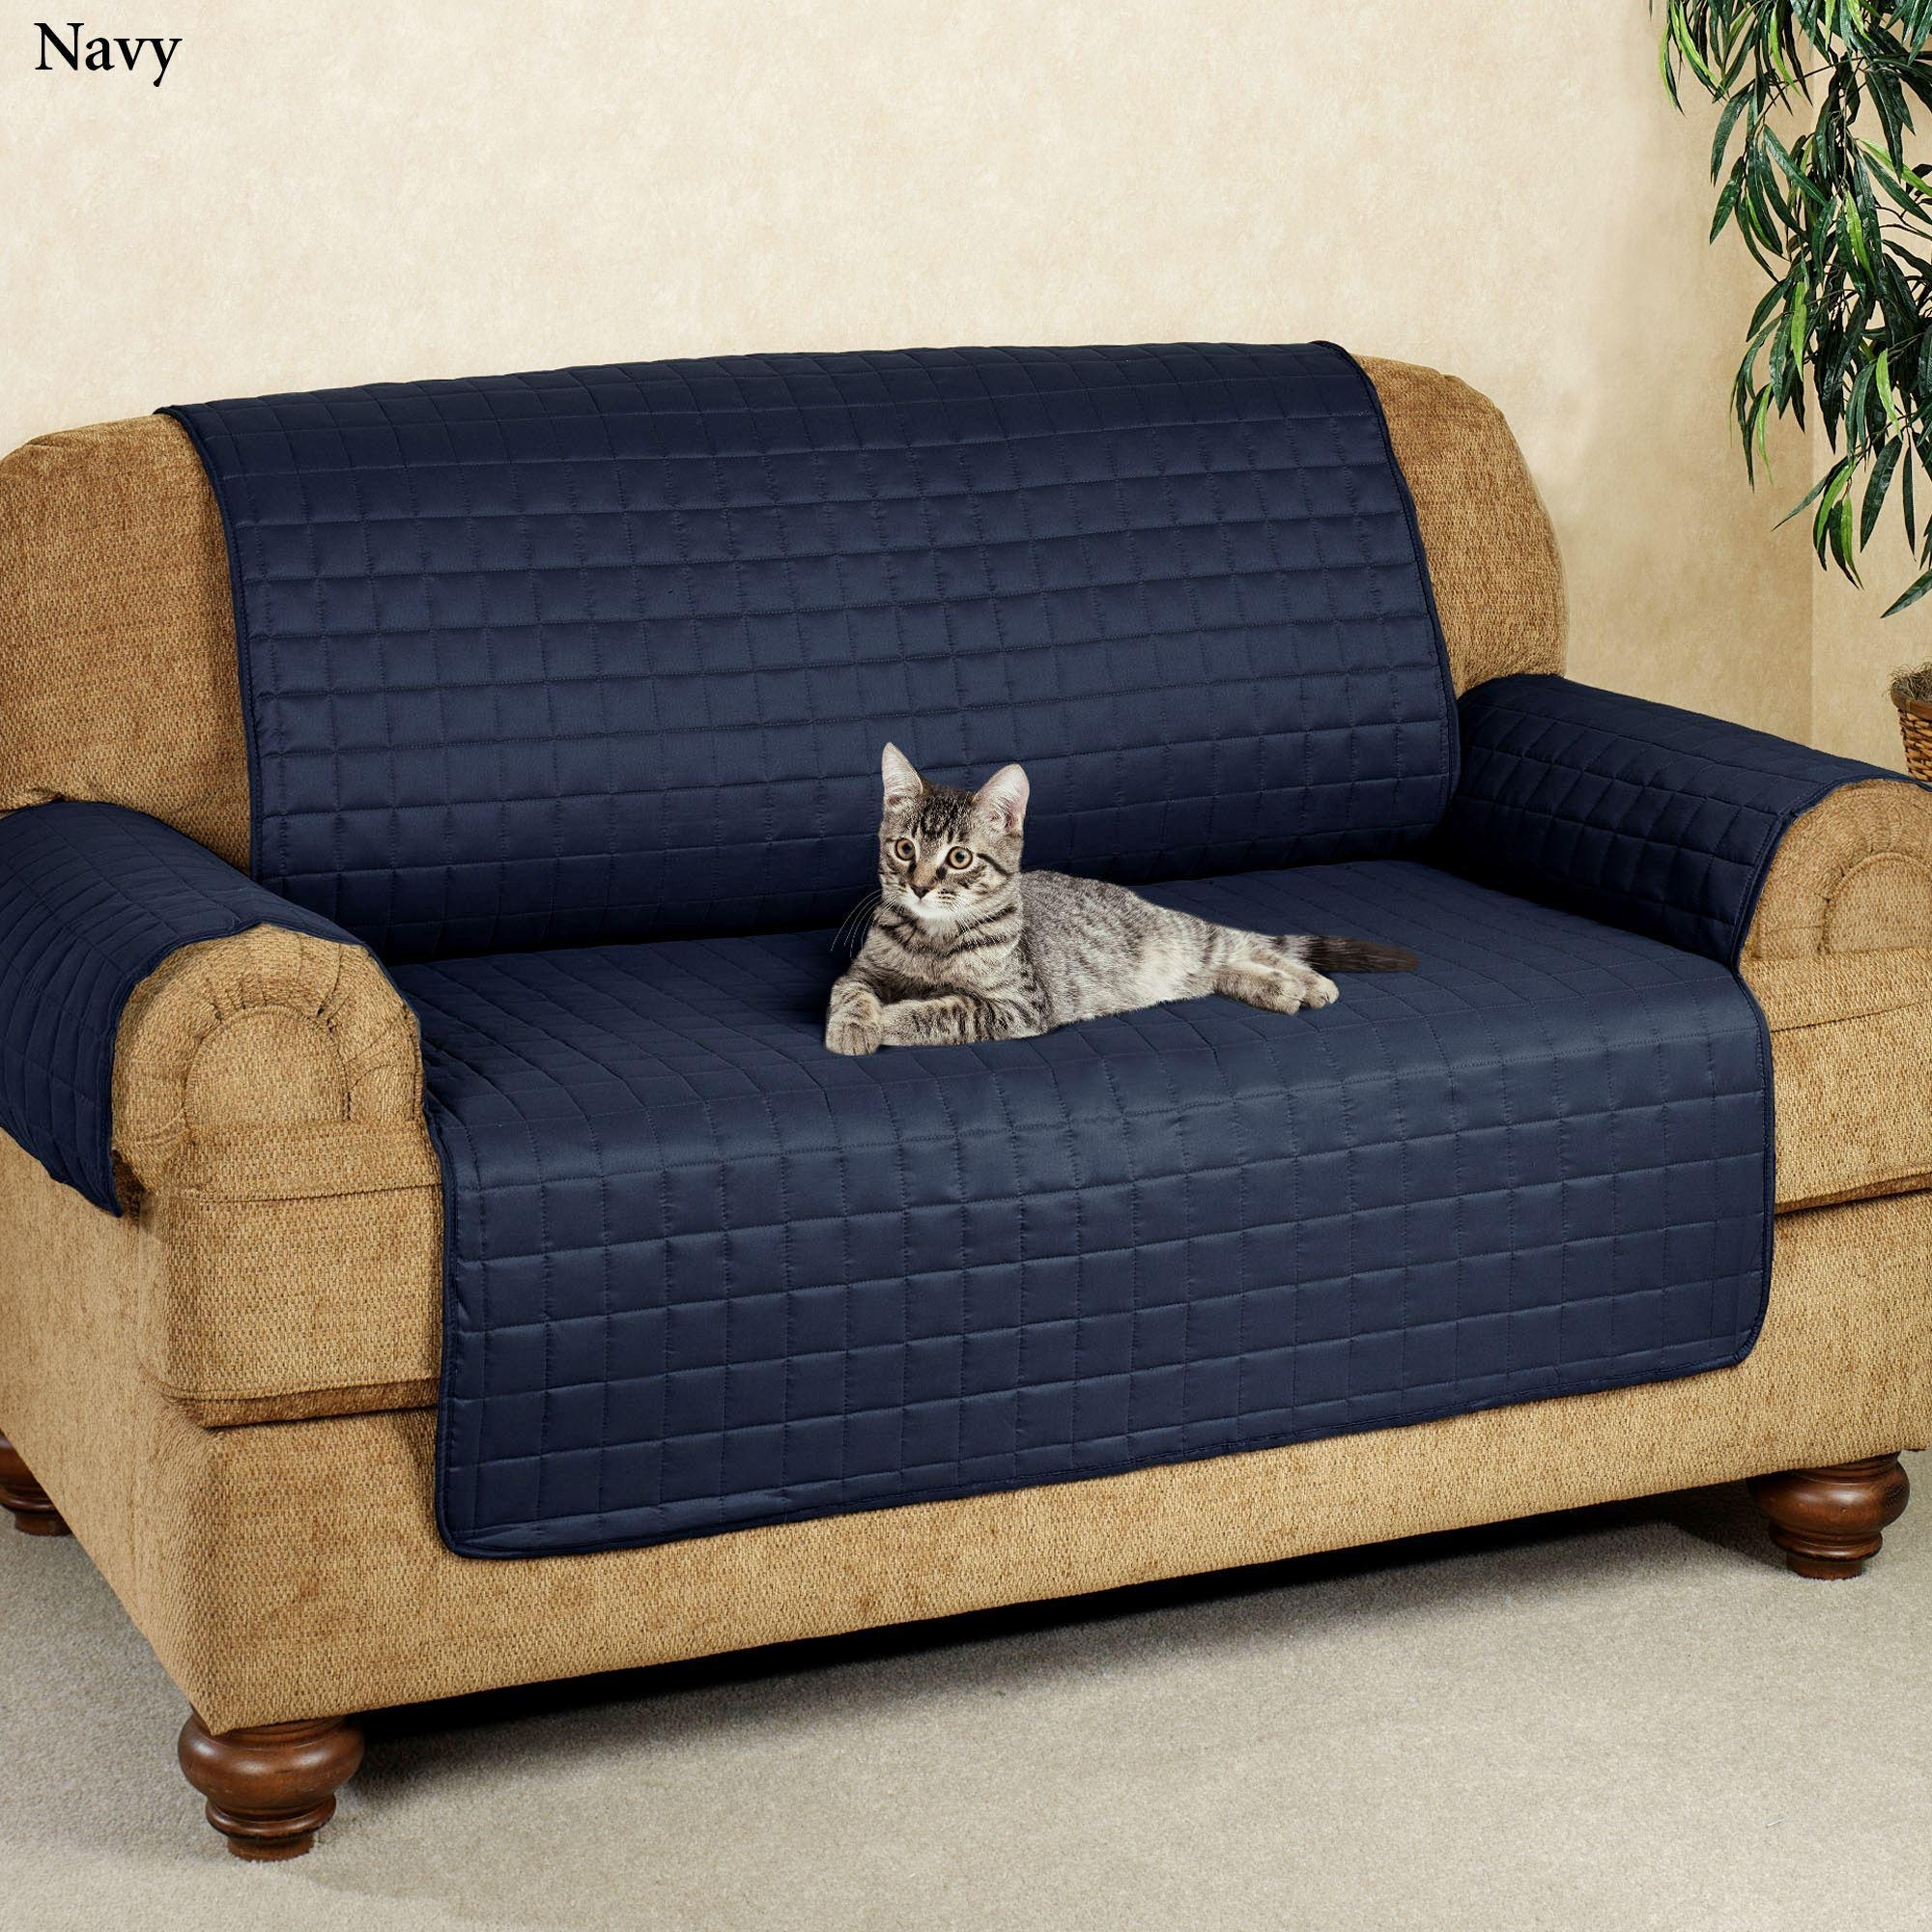 Navy Blue Sofa Slipcovers | Tehranmix Decoration in Blue Sofa Slipcovers